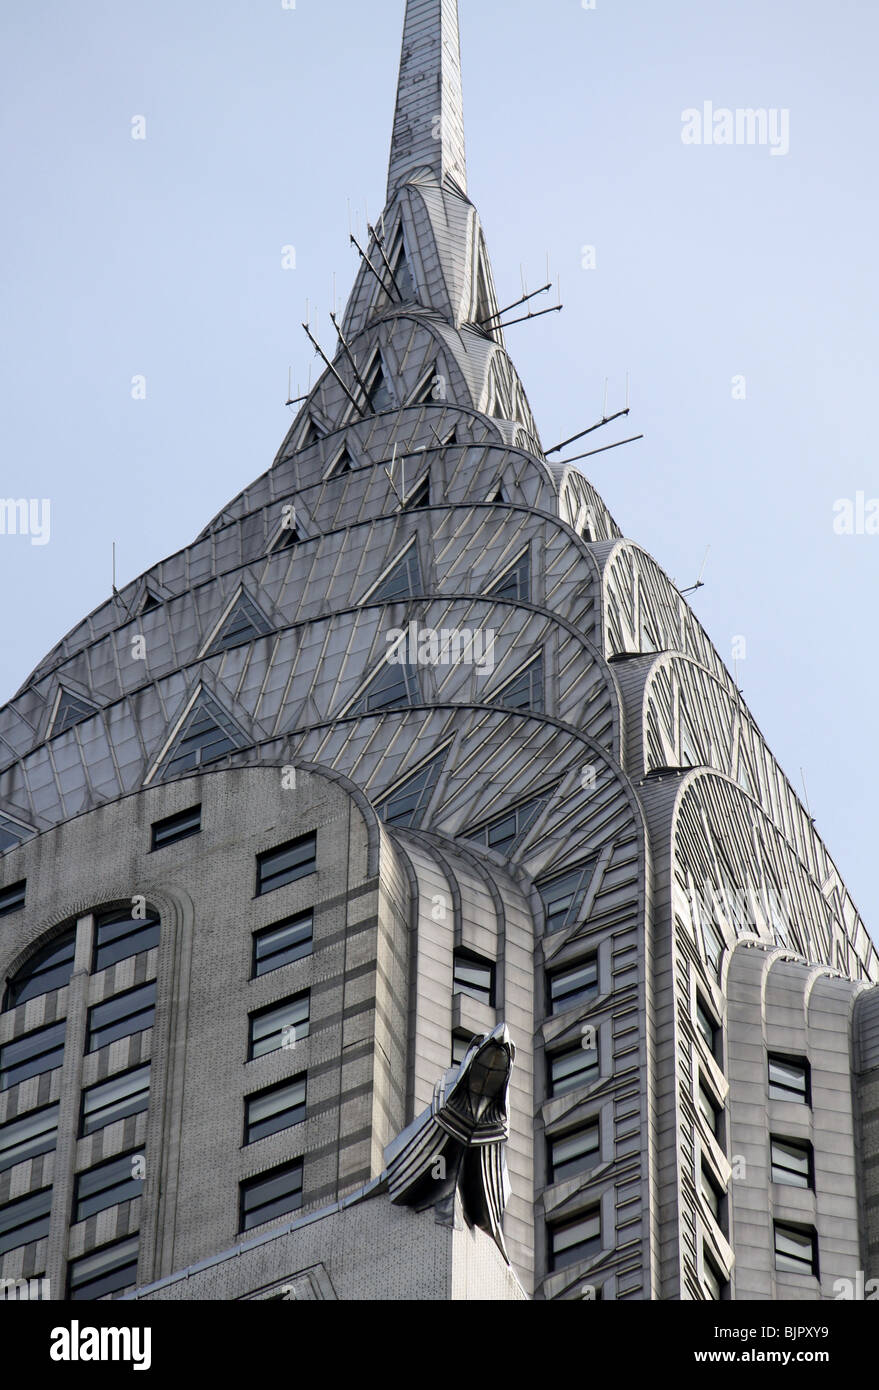 Top of the Chrysler Building, New York City. - Stock Image